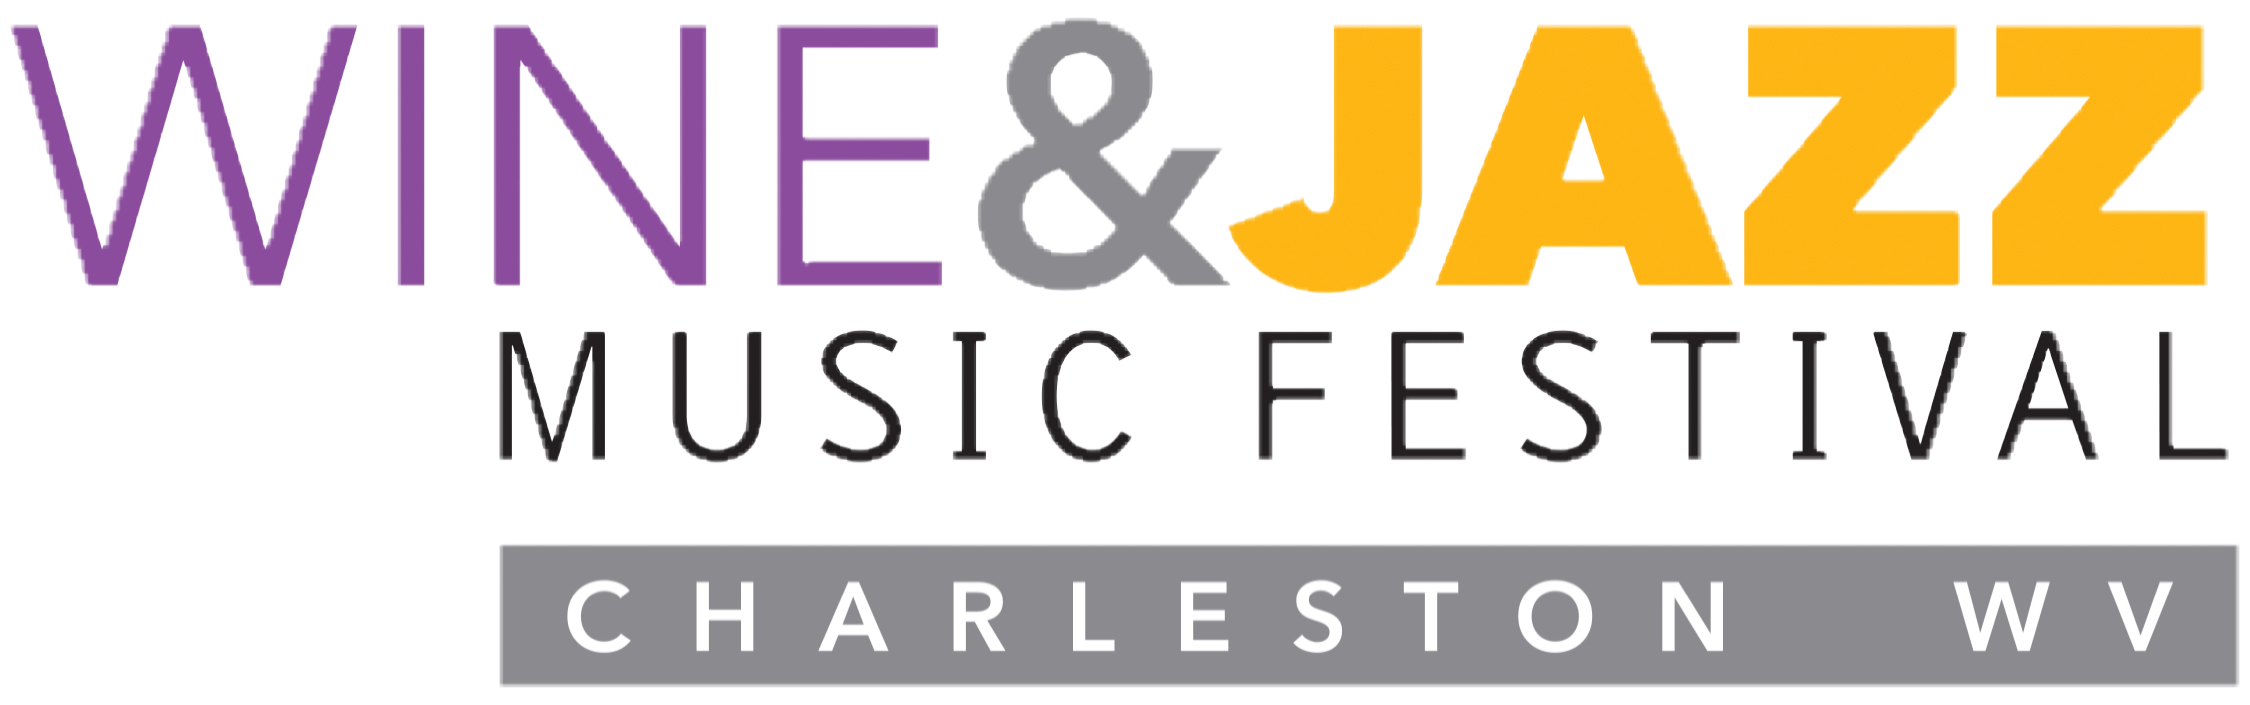 Tickets for Wine and Jazz Music Festival 2018 in Charleston from ShowClix